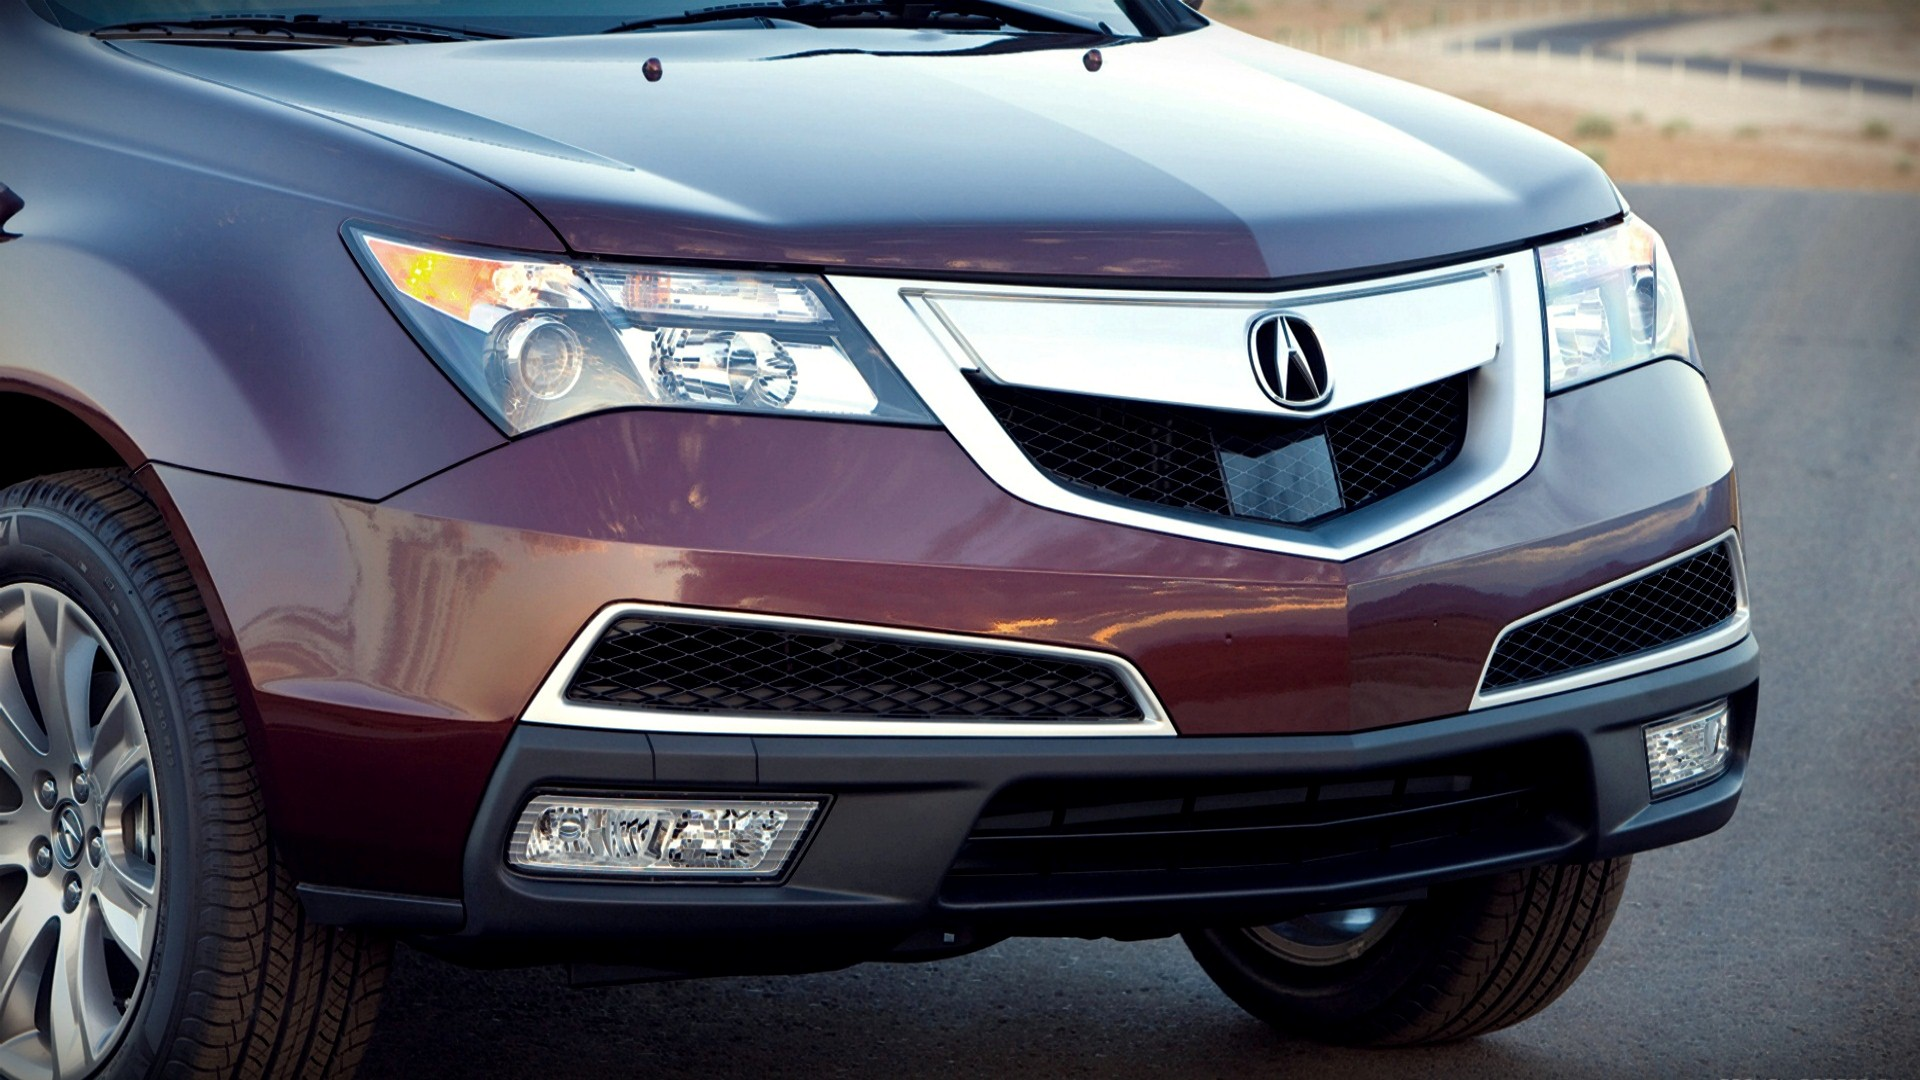 Acura-Mdx-Quarter-Mile-hq-cars-1920x1080-x-x-HD-Auto-Cars-dr-wallpaper-wpc9001264